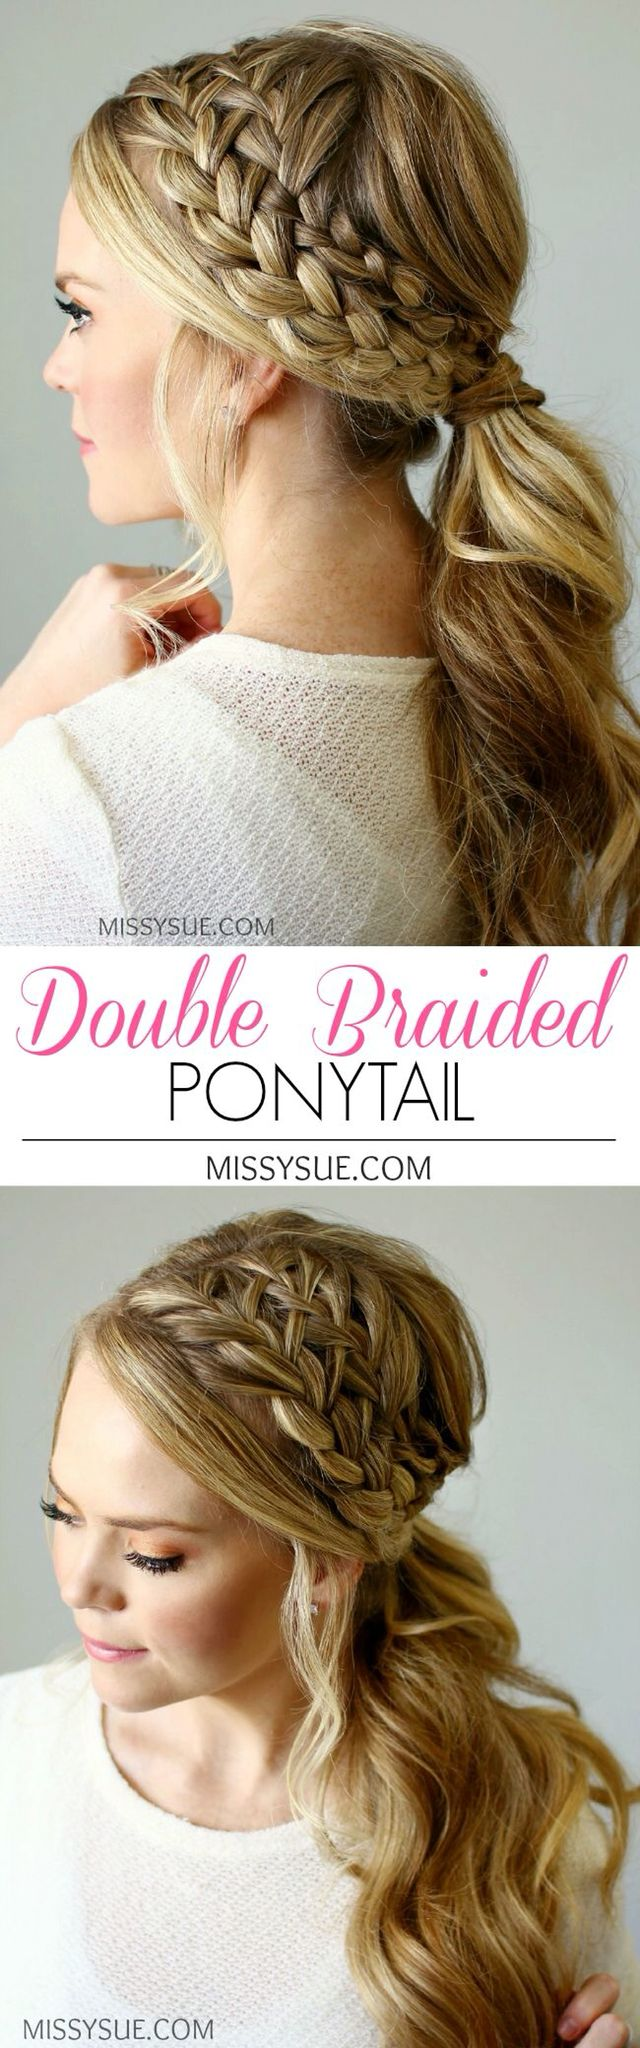 best hair u makeup images on pinterest hairstyles braids and hair